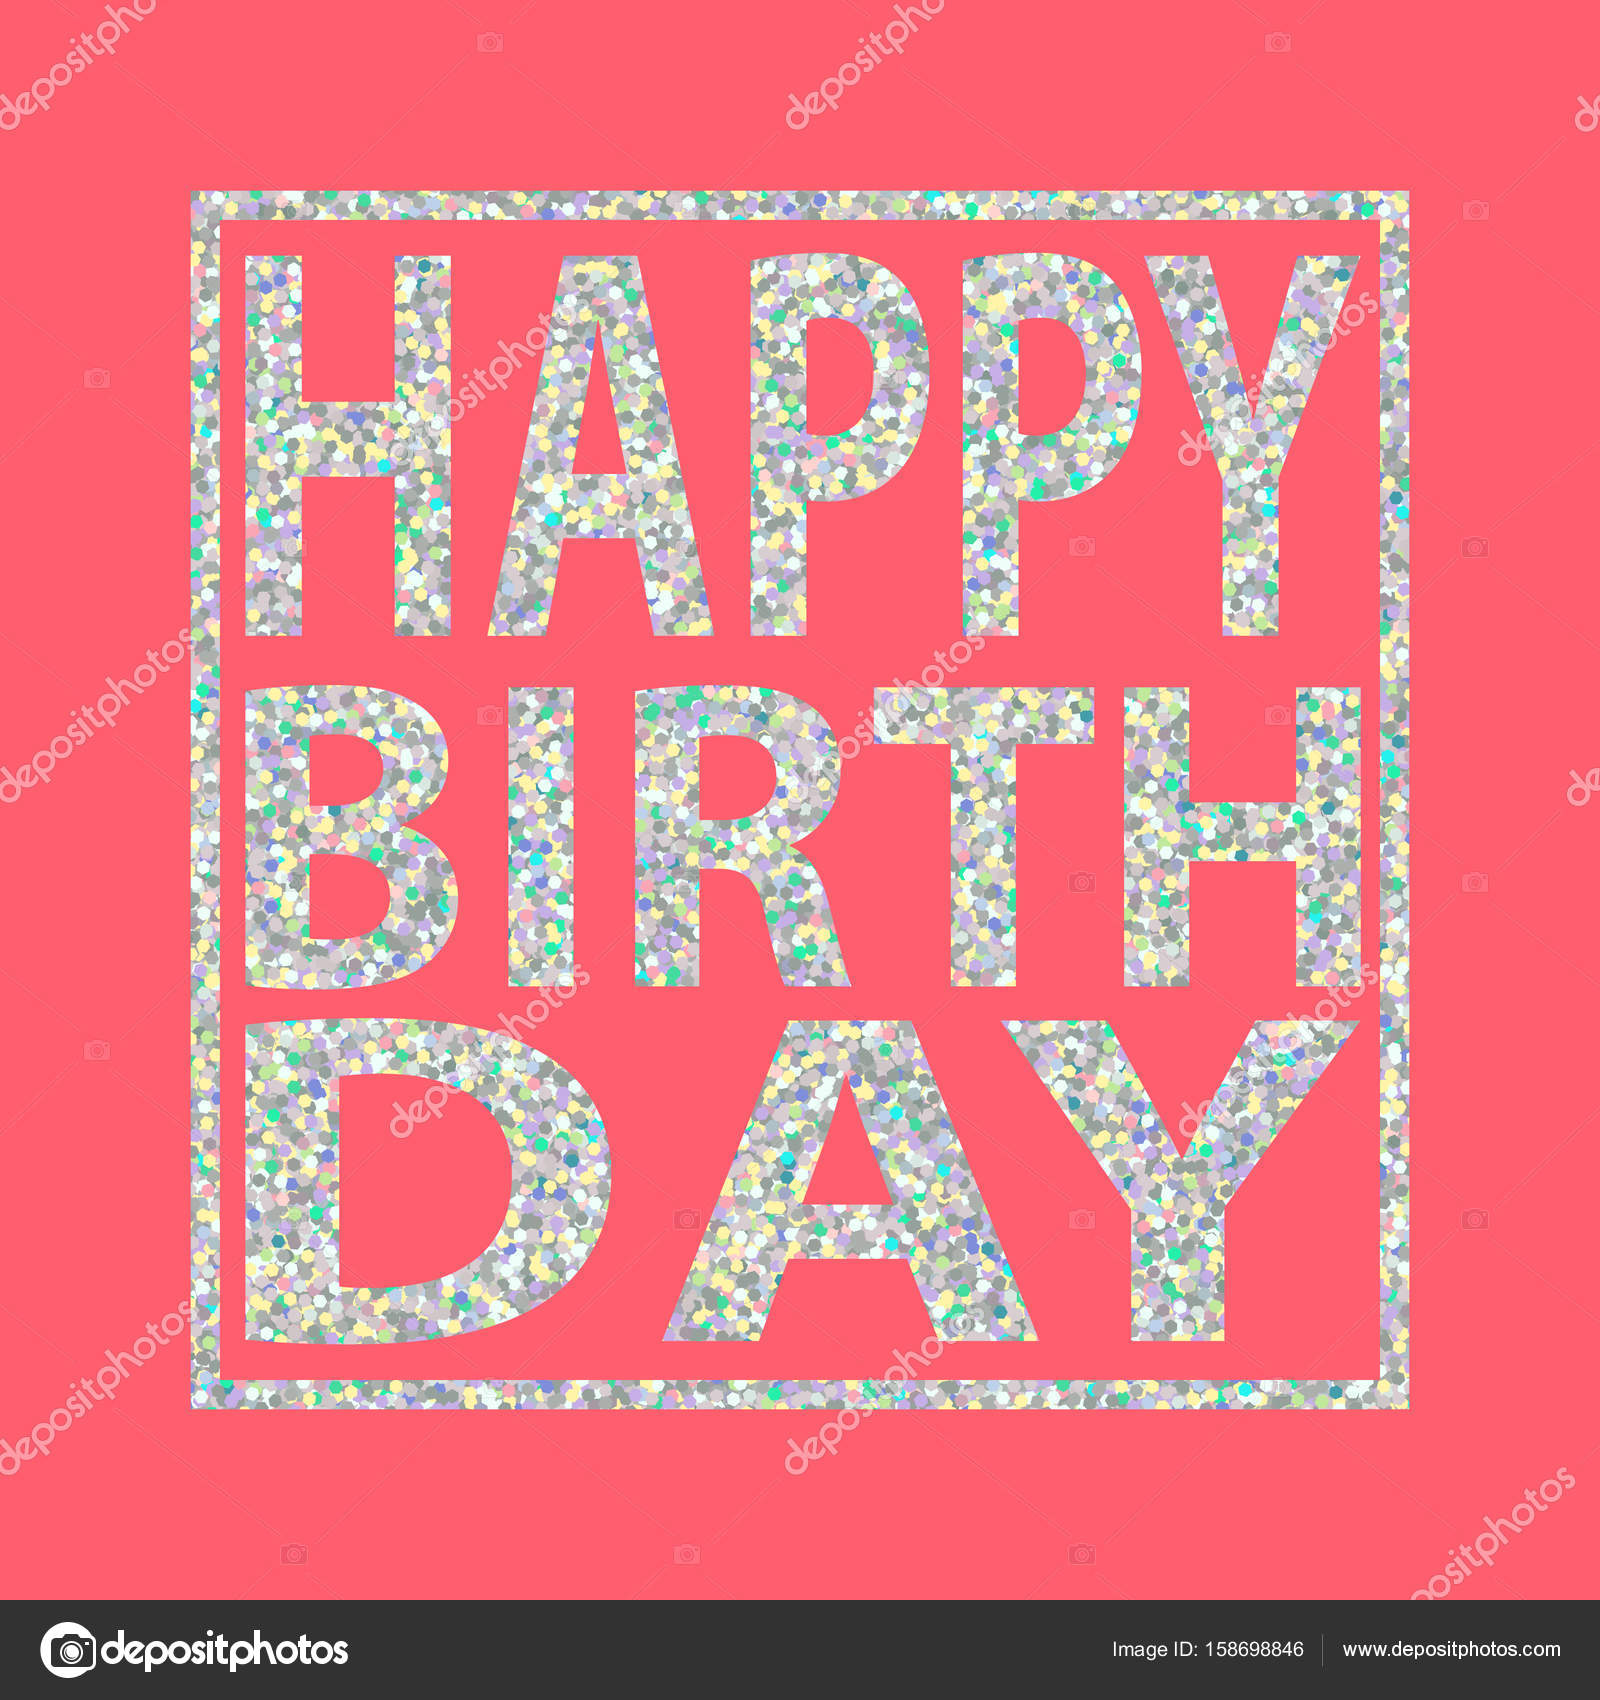 Happy birthday quote silver glitter girl pink background stock happy birthday quote silver glitter girl pink background stock vector 158698846 stopboris Images